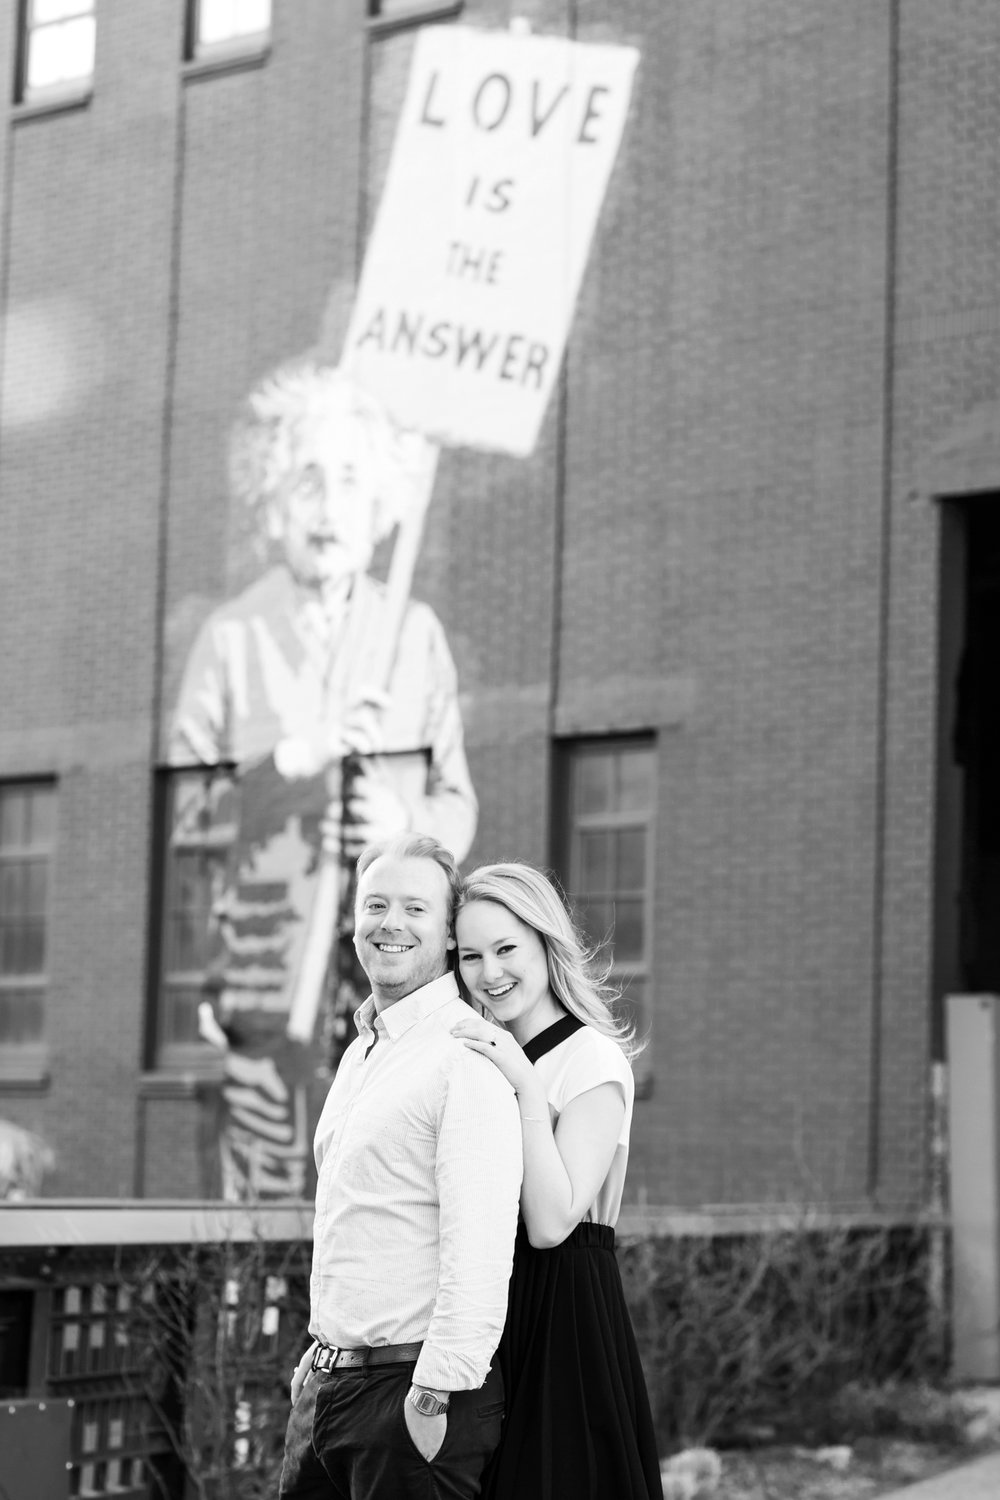 08_Kasey_Paul_West_Village_The_Highline_NYC_Engagement_Tanya_Salazar_Photography_033.jpg